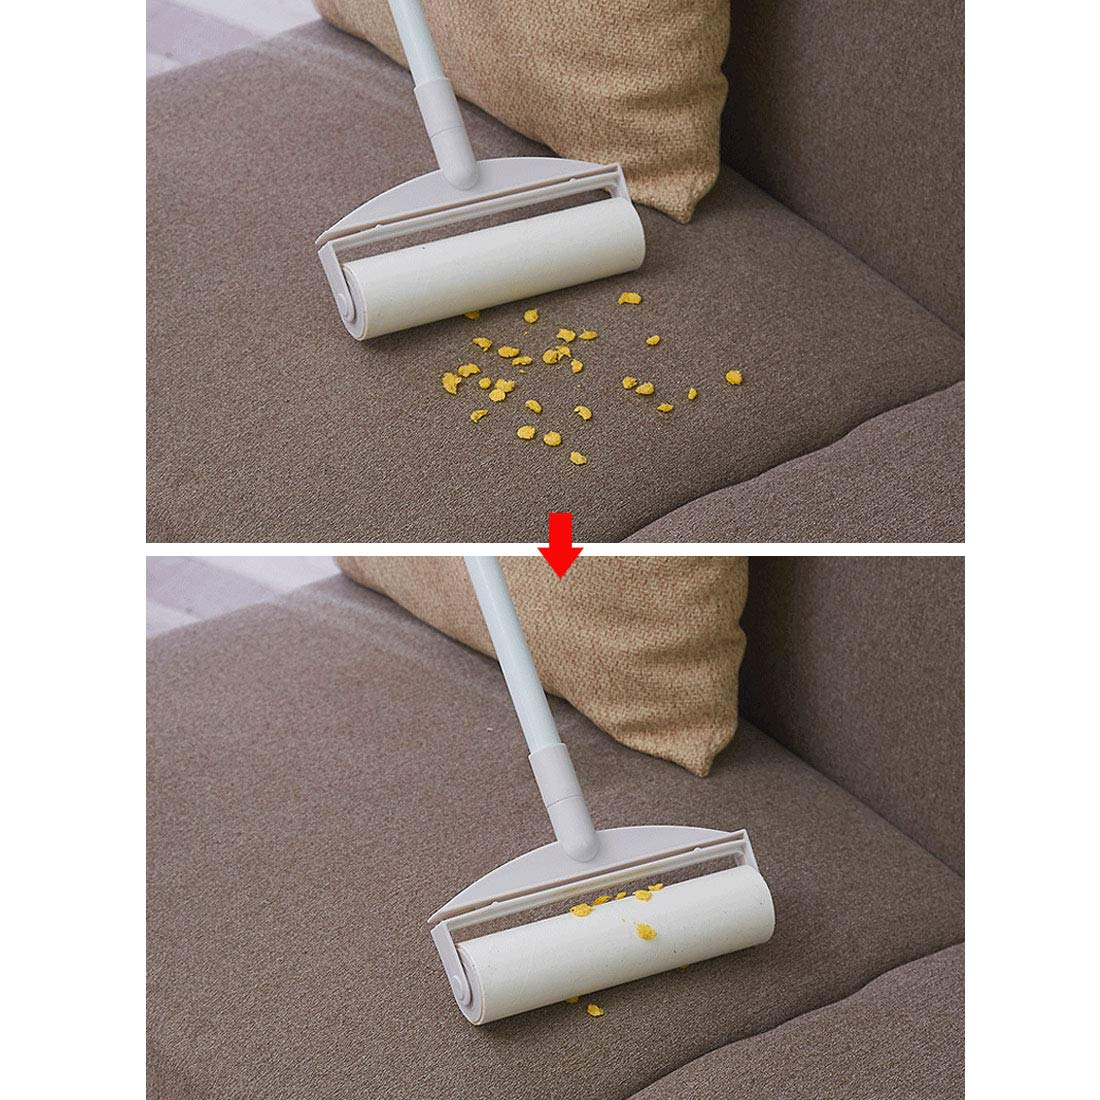 XINGYUE Lint Roller Pet Hair Lint Removers with Long Handle for Clothes Animal Car by XINGYUE (Image #7)